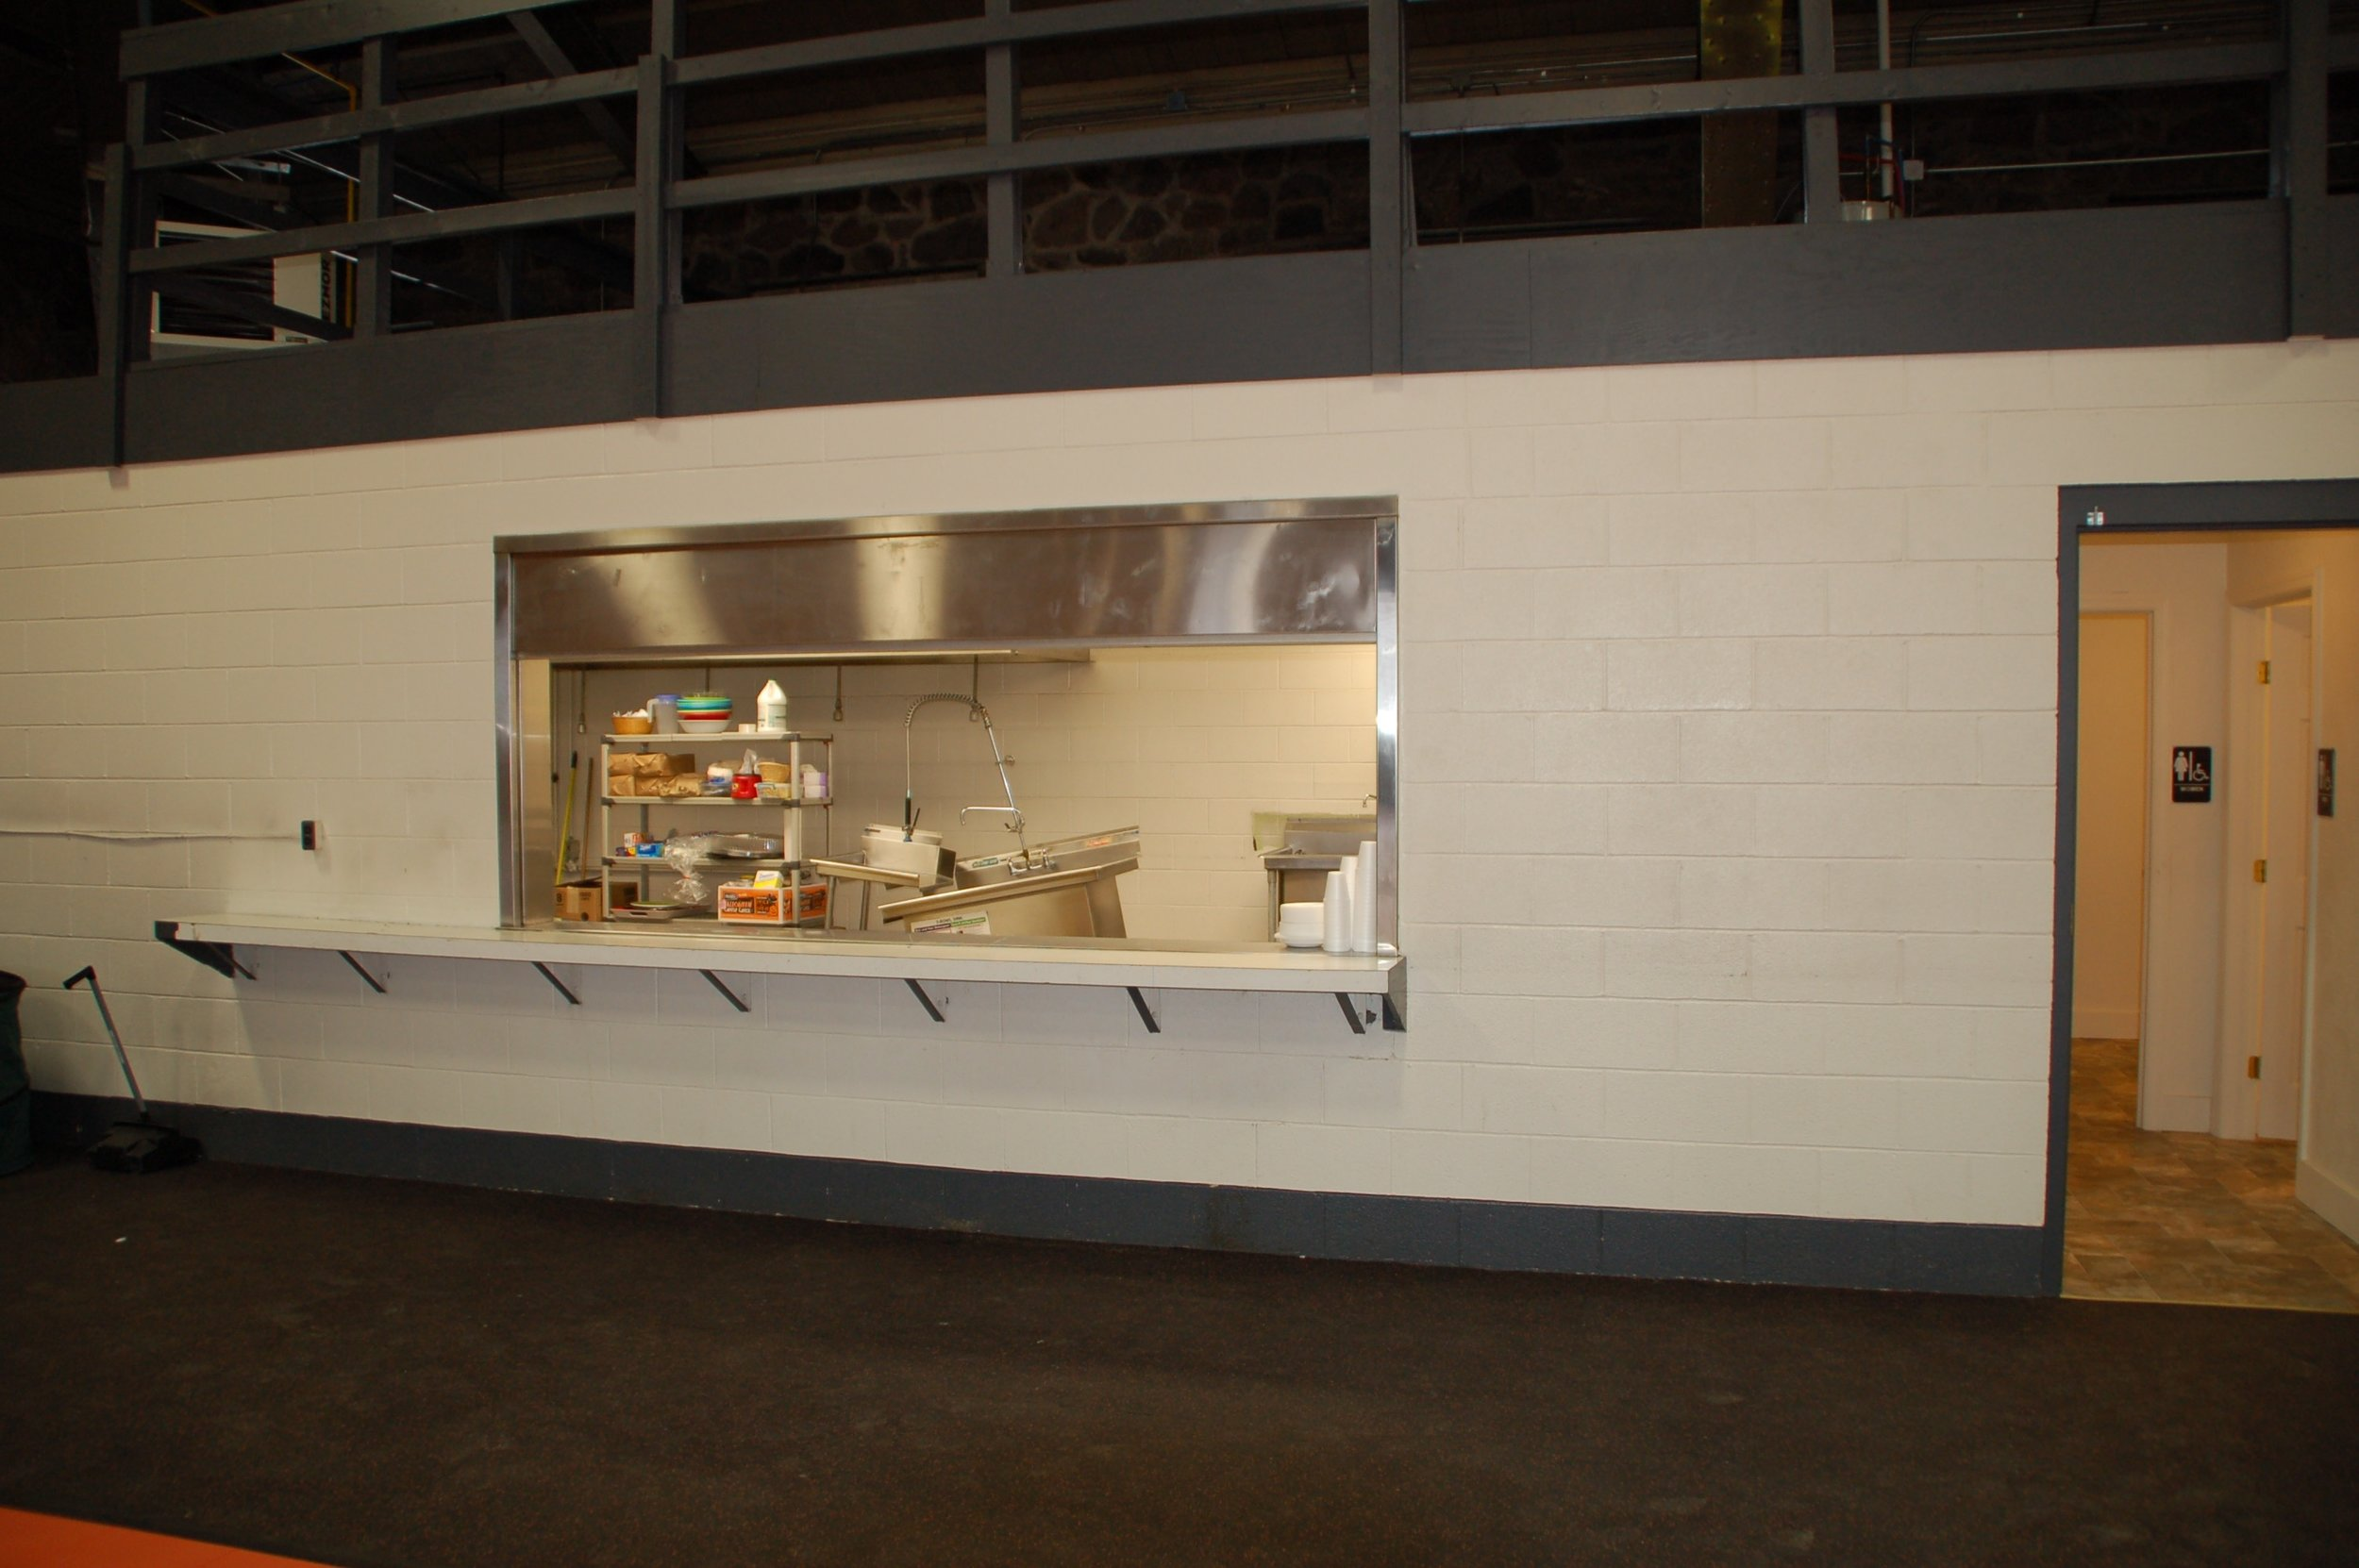 A view from the outside of the kitchen.